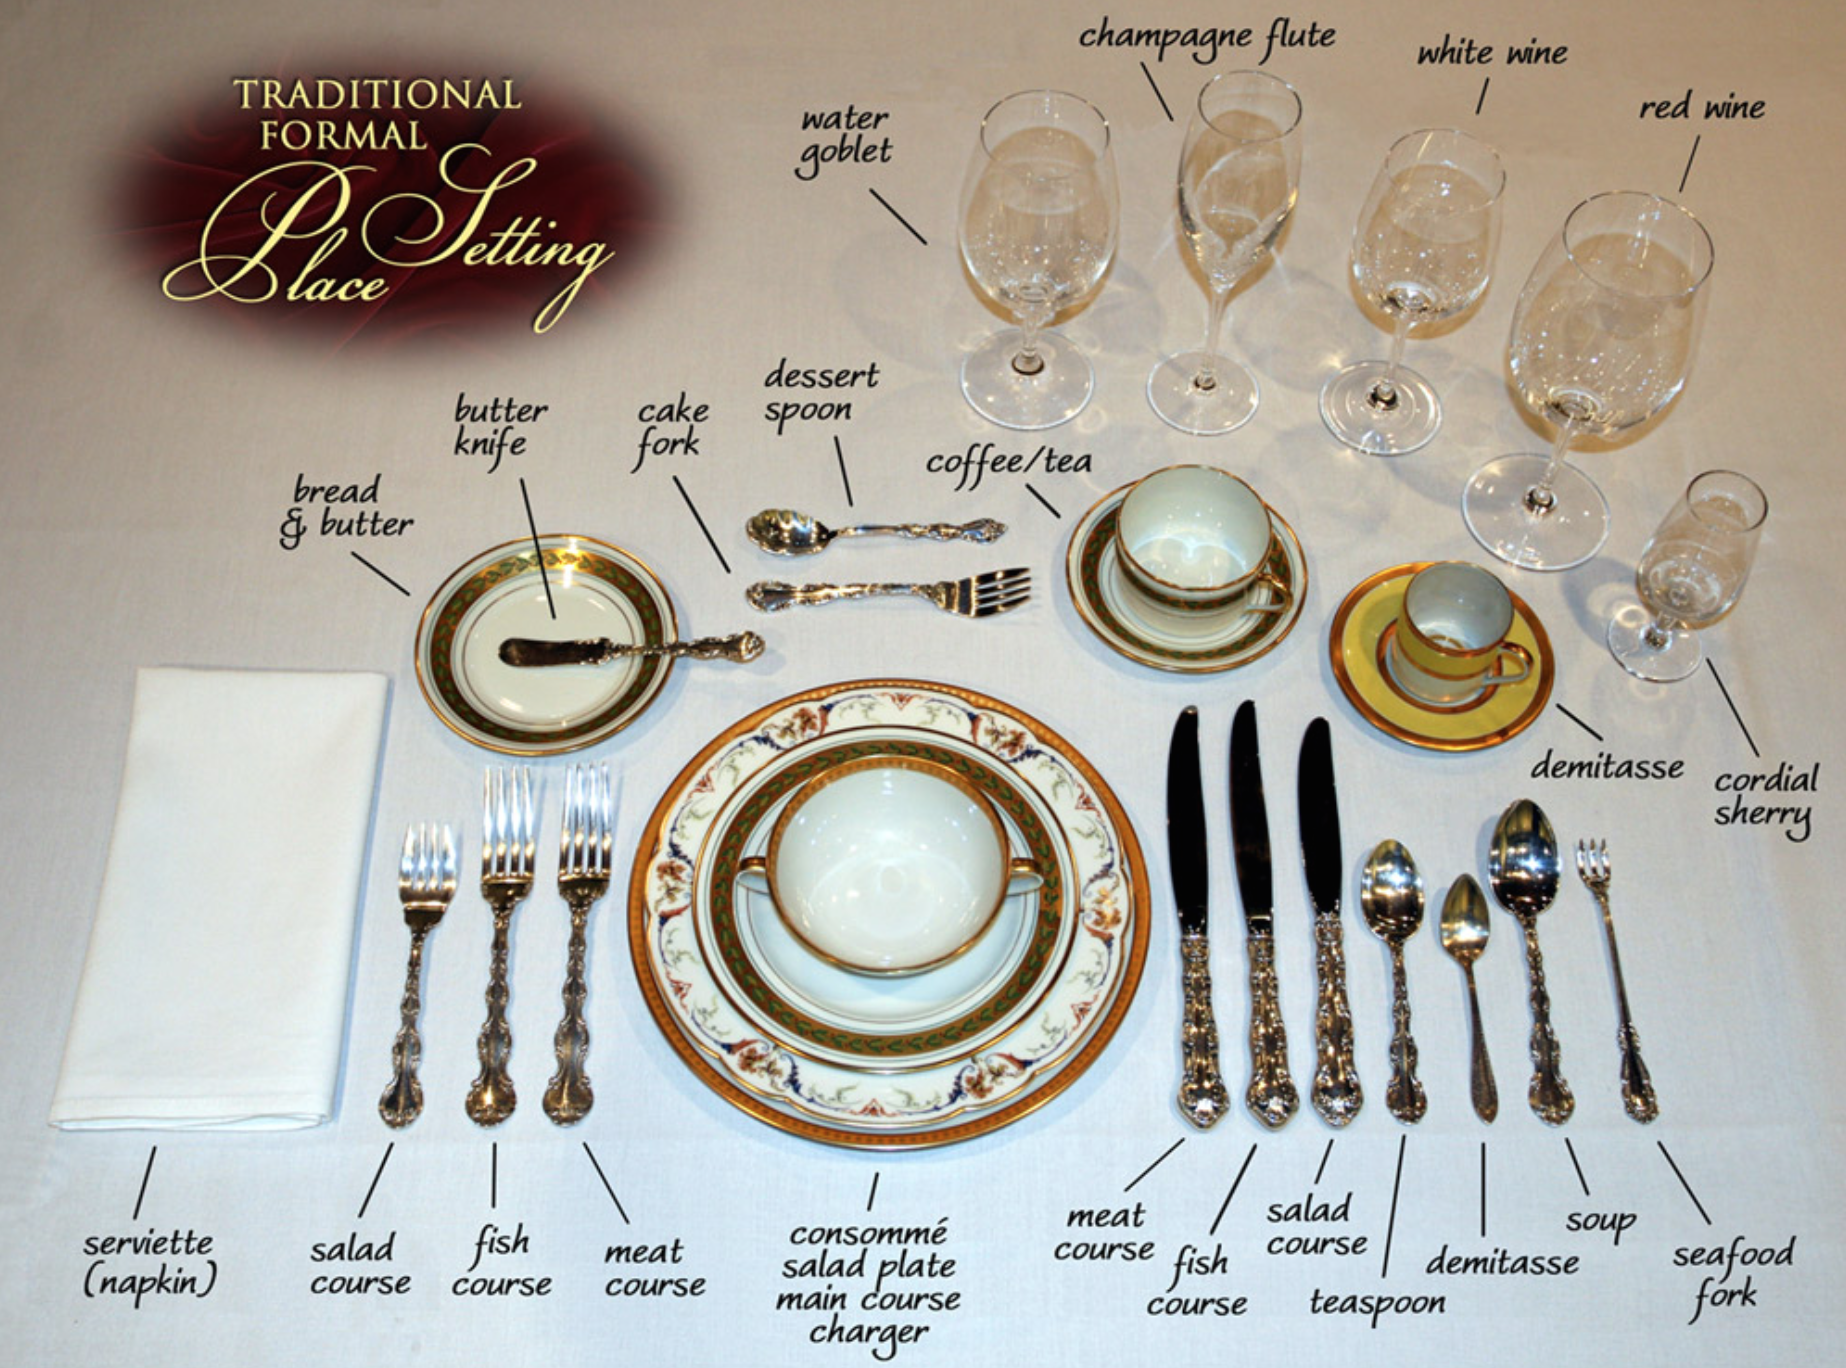 Formal Dinner Table Setting Etiquette - Table settings speak non verbally about the etiquette formality expected menu items